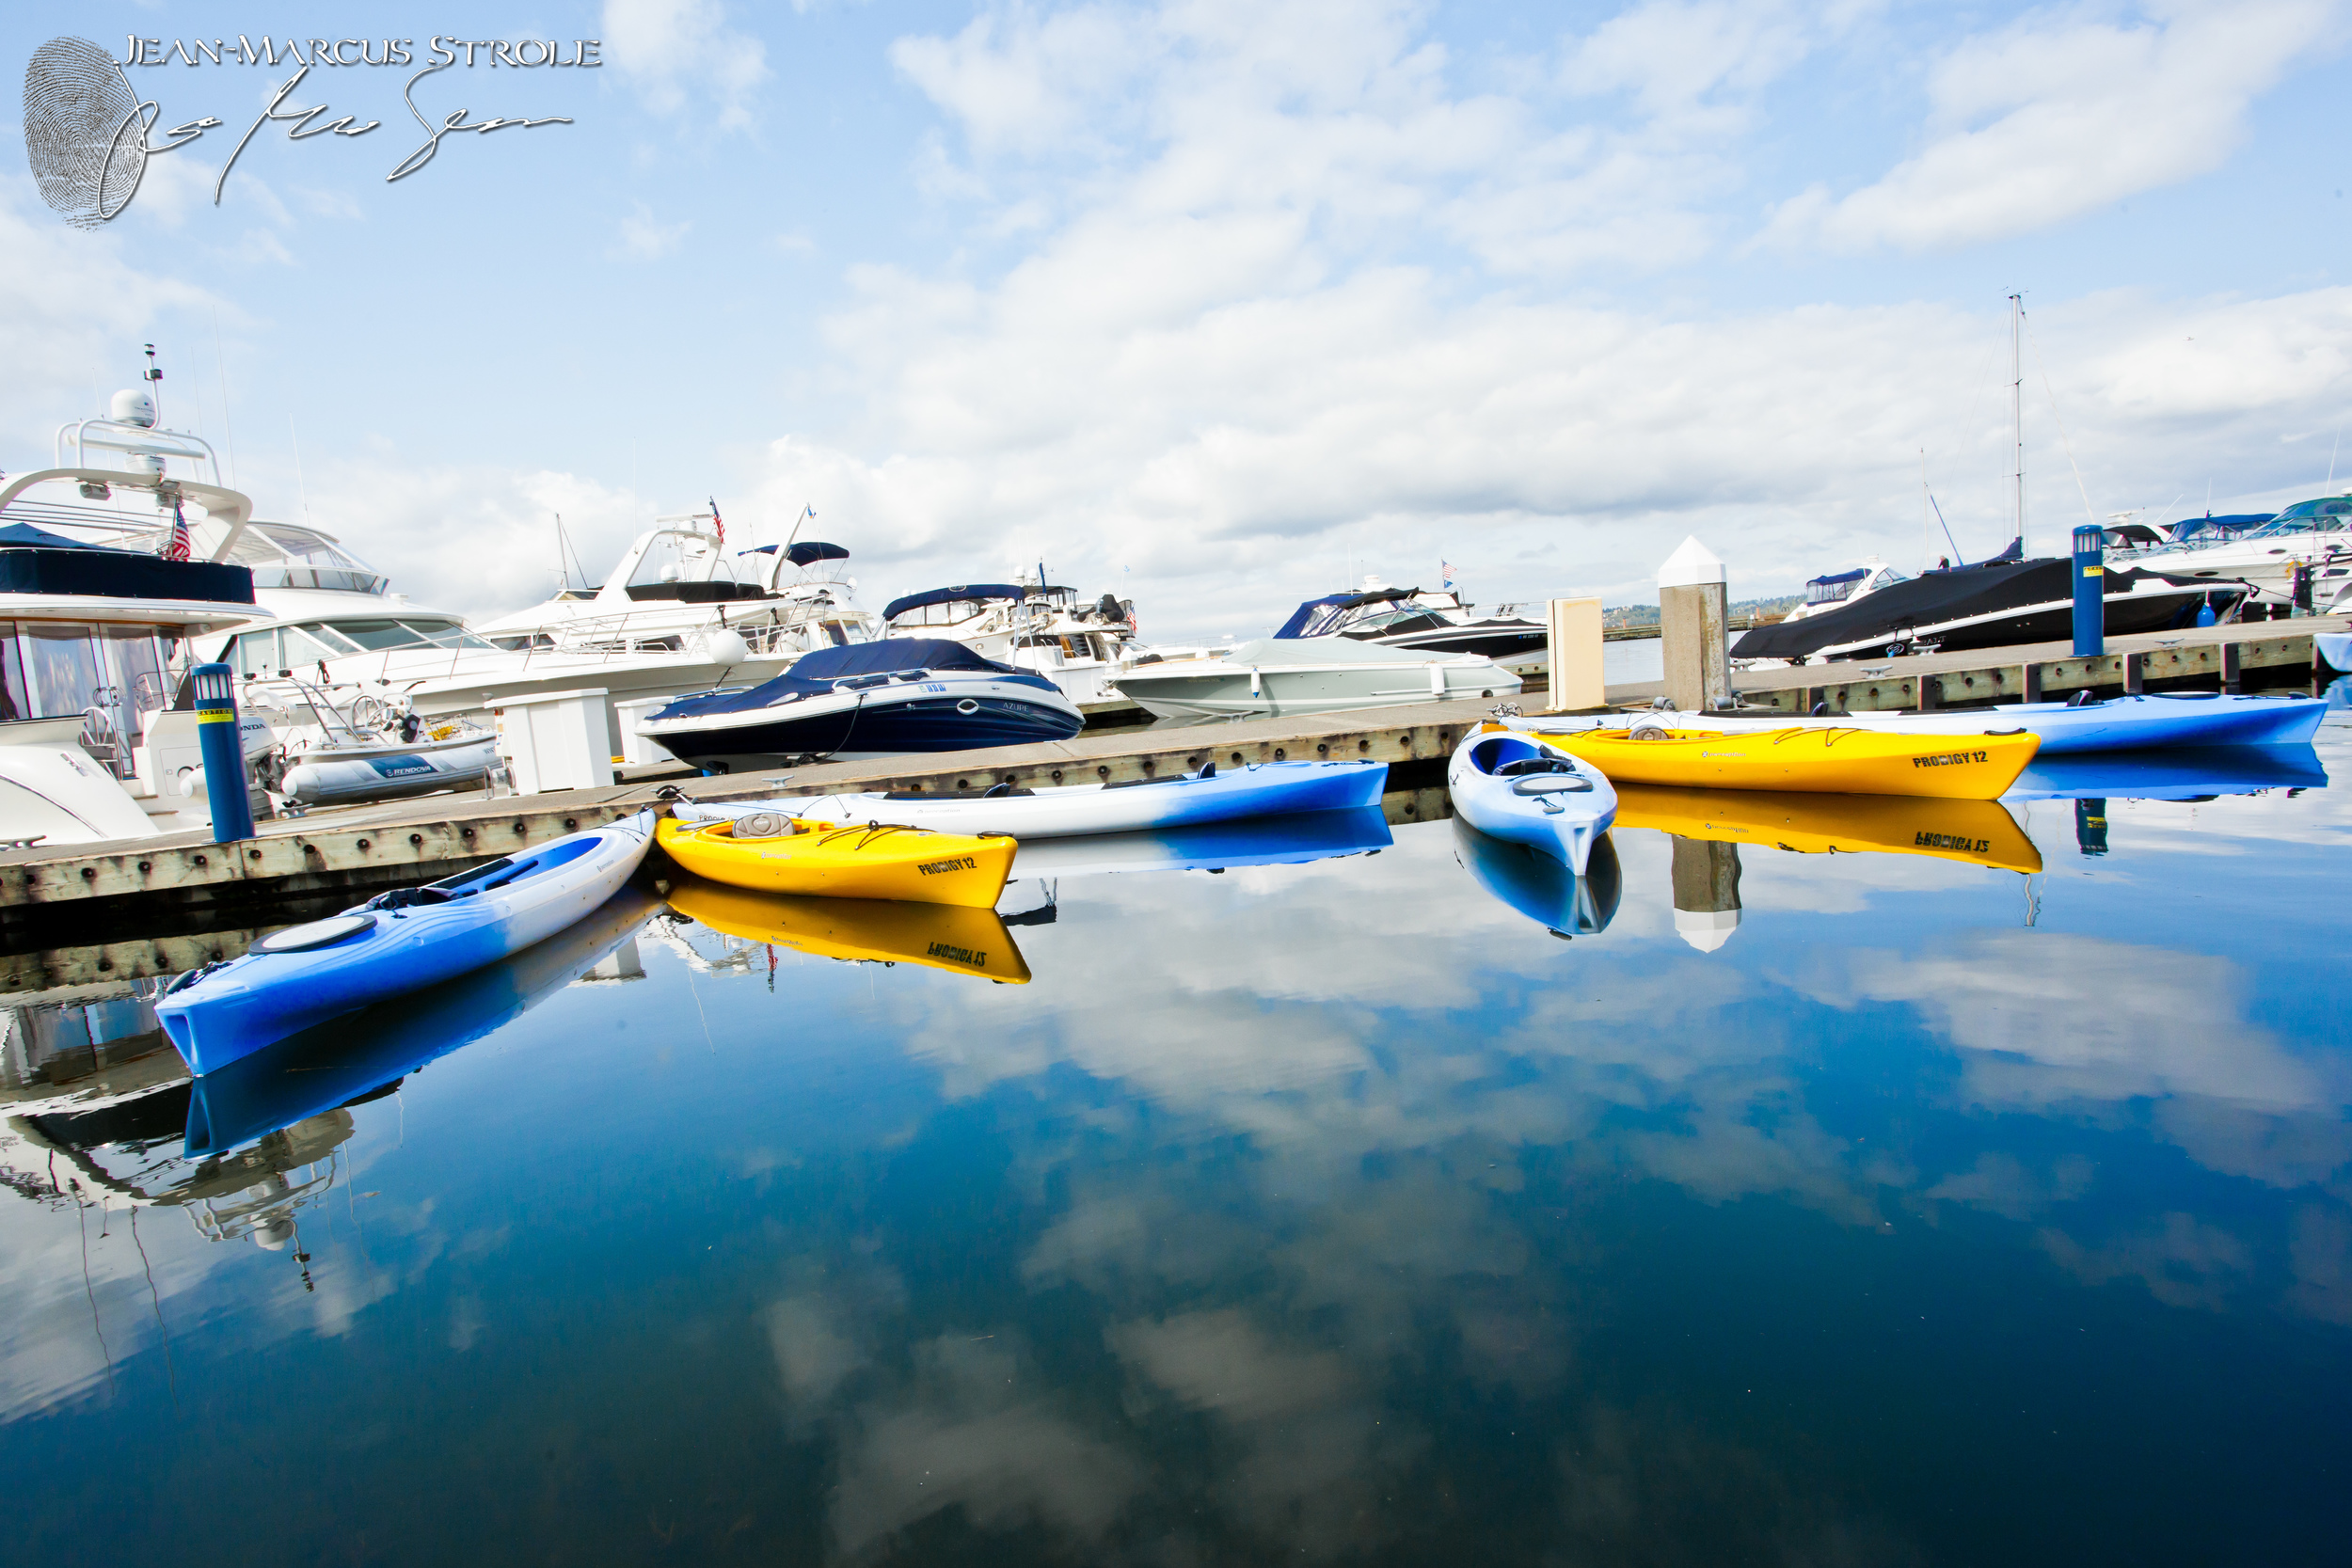 Carillon_Point_Waterfront_Adventures-Jean-Marcus_Strole_Photography-23.jpg